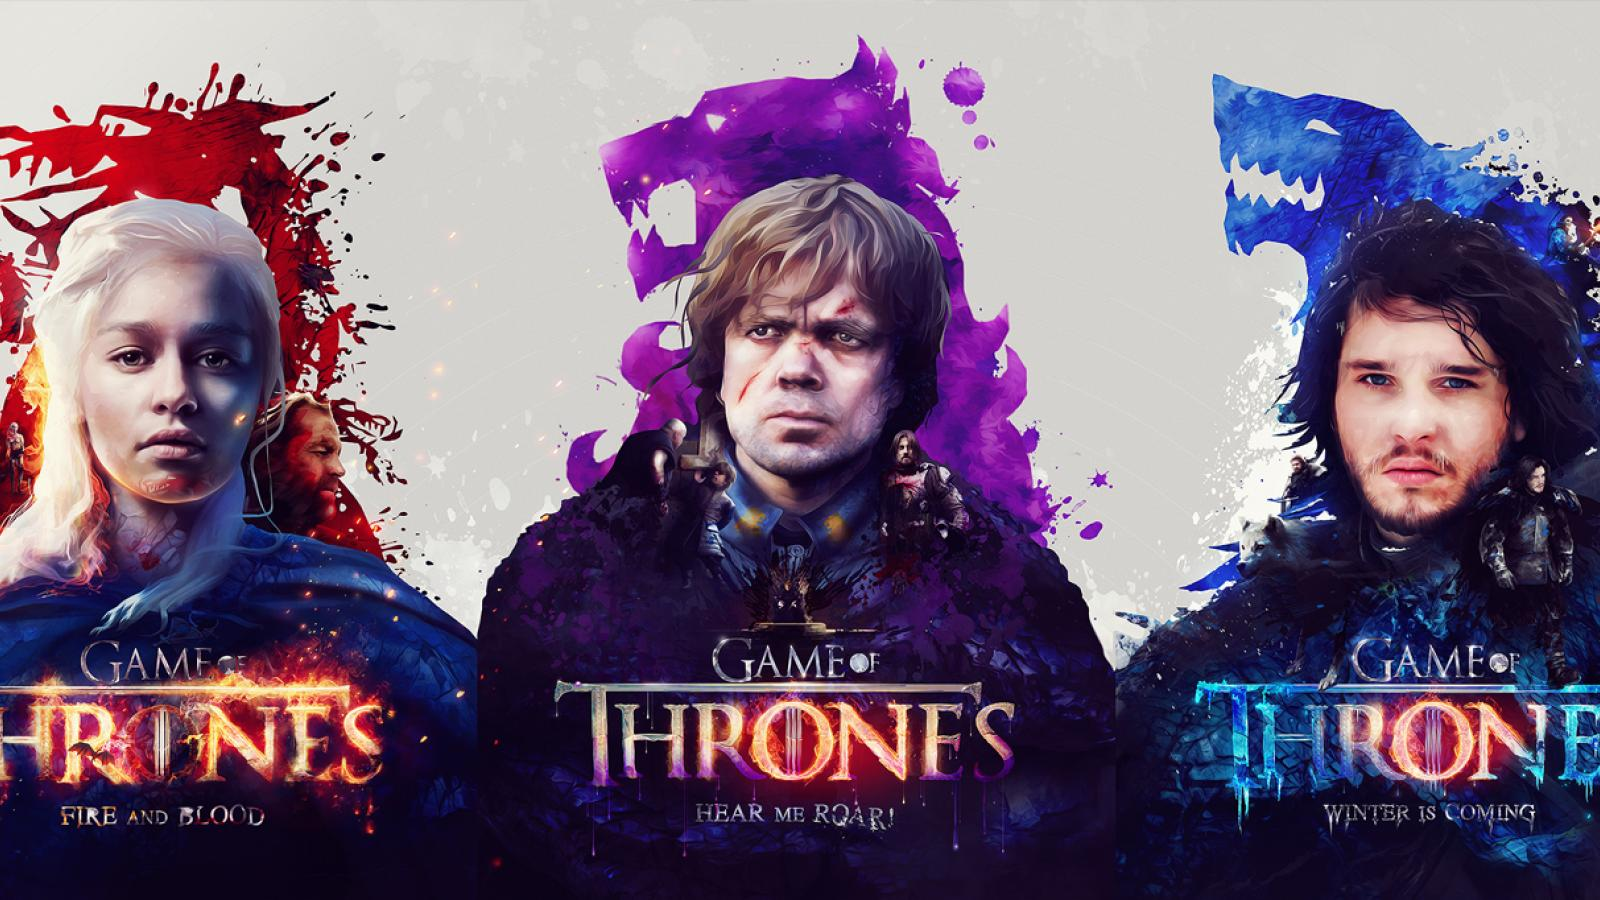 Game of Thrones Posters by Adam Spizak Exclusive on Funkrush + Giveaway